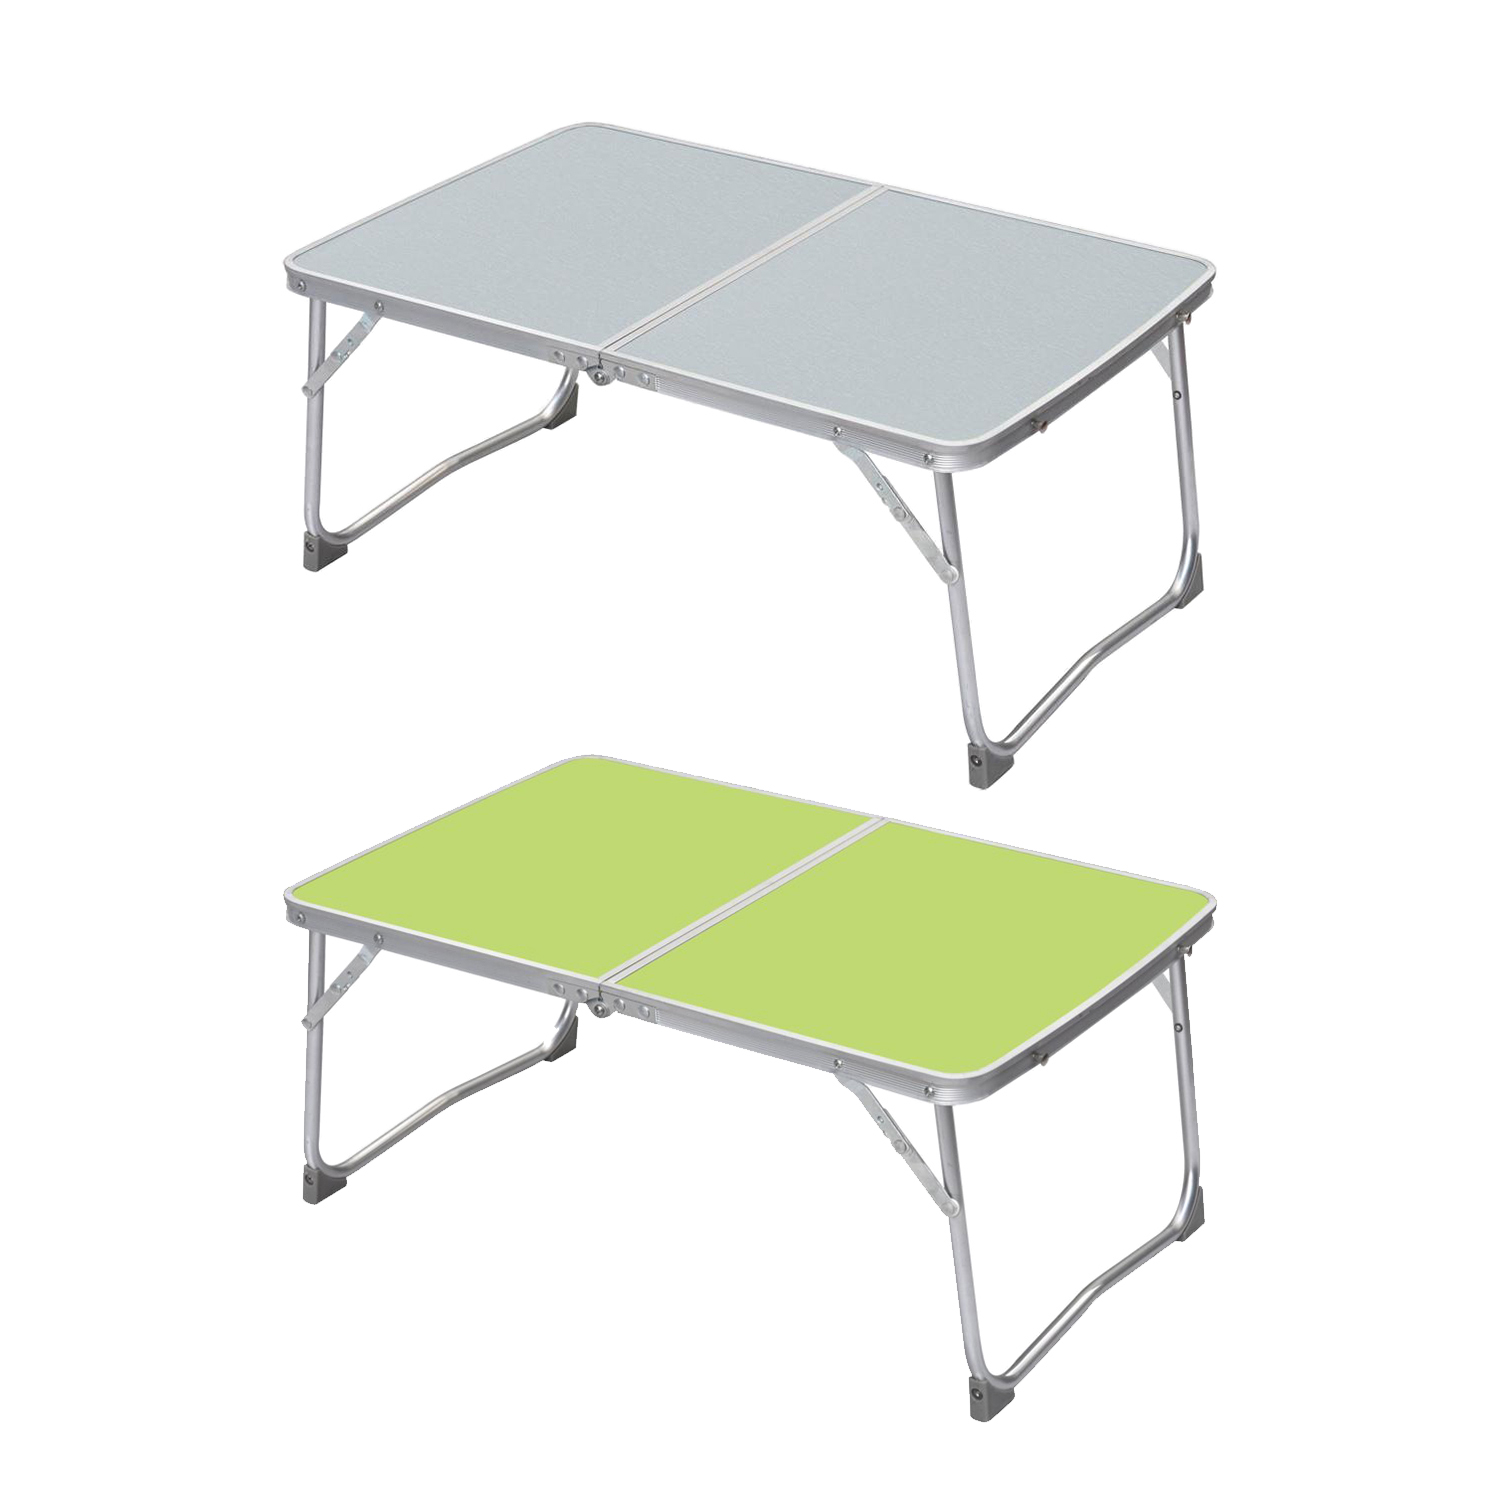 Small 62x41x28cm pc laptop table bed desk for Pc bed table